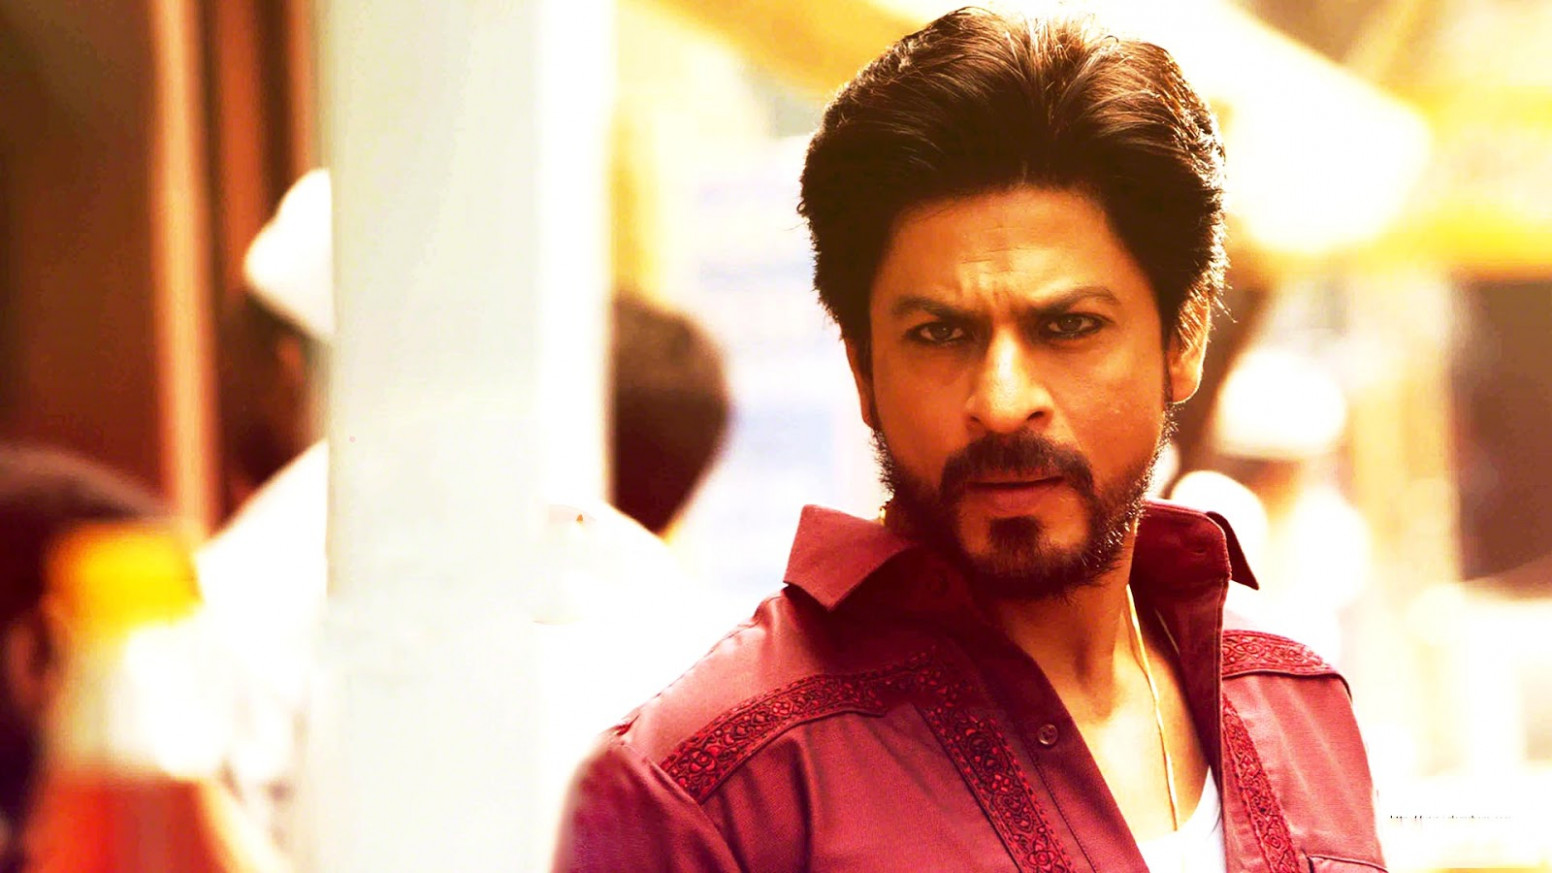 Shahrukh Khan Wallpapers HD Download Free 1080p ...